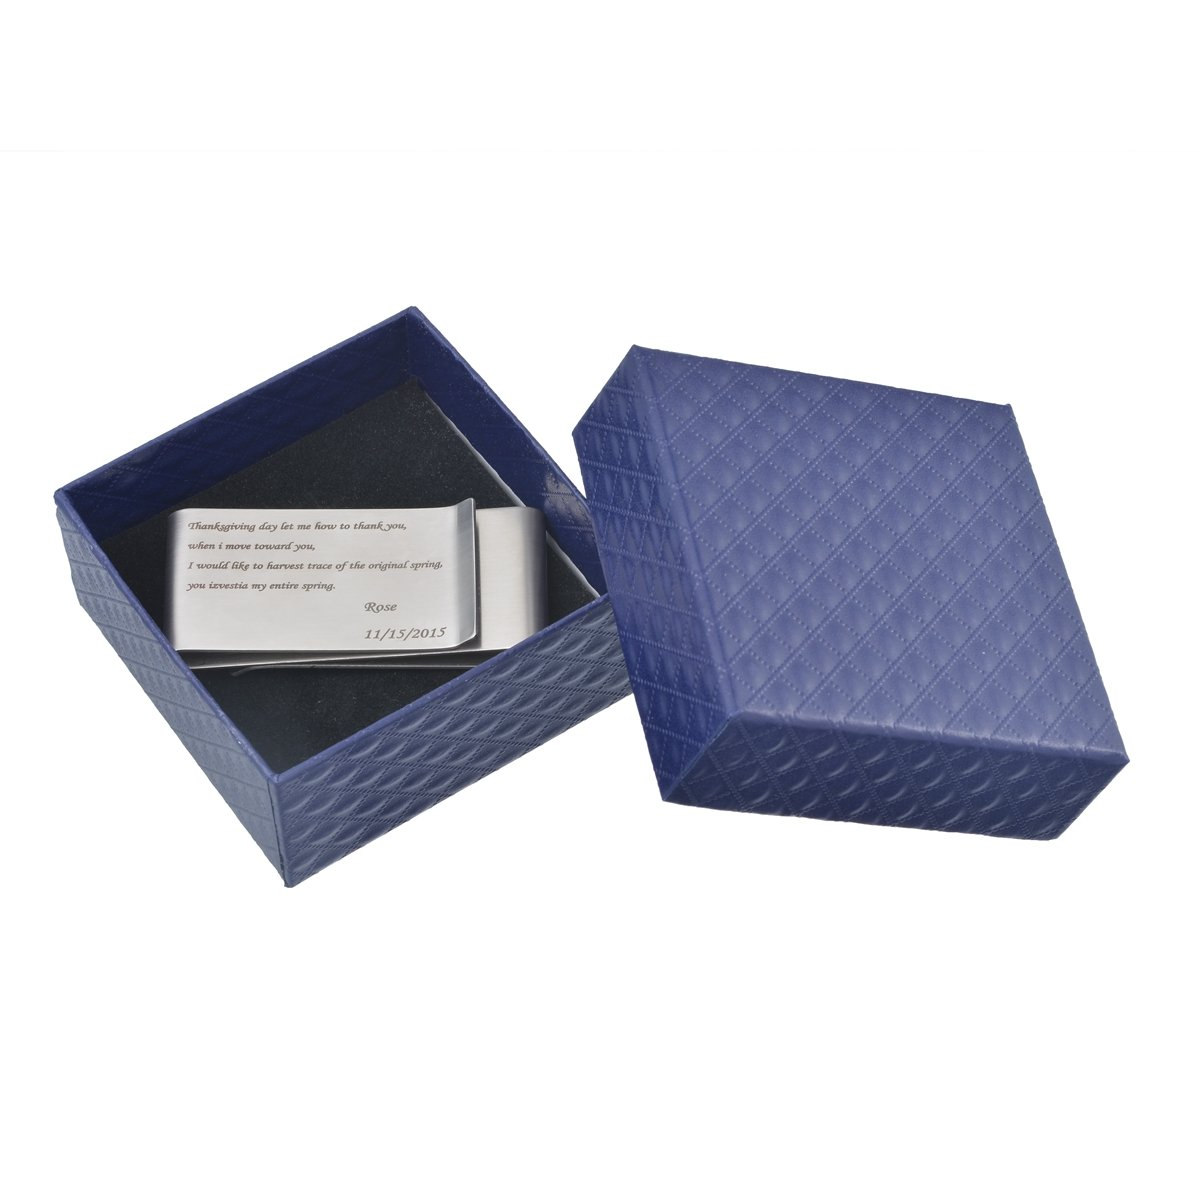 HooAMI Personalized Stainless Steel Money Clip Free Engraving with Beautiful Jewelry Gift Box